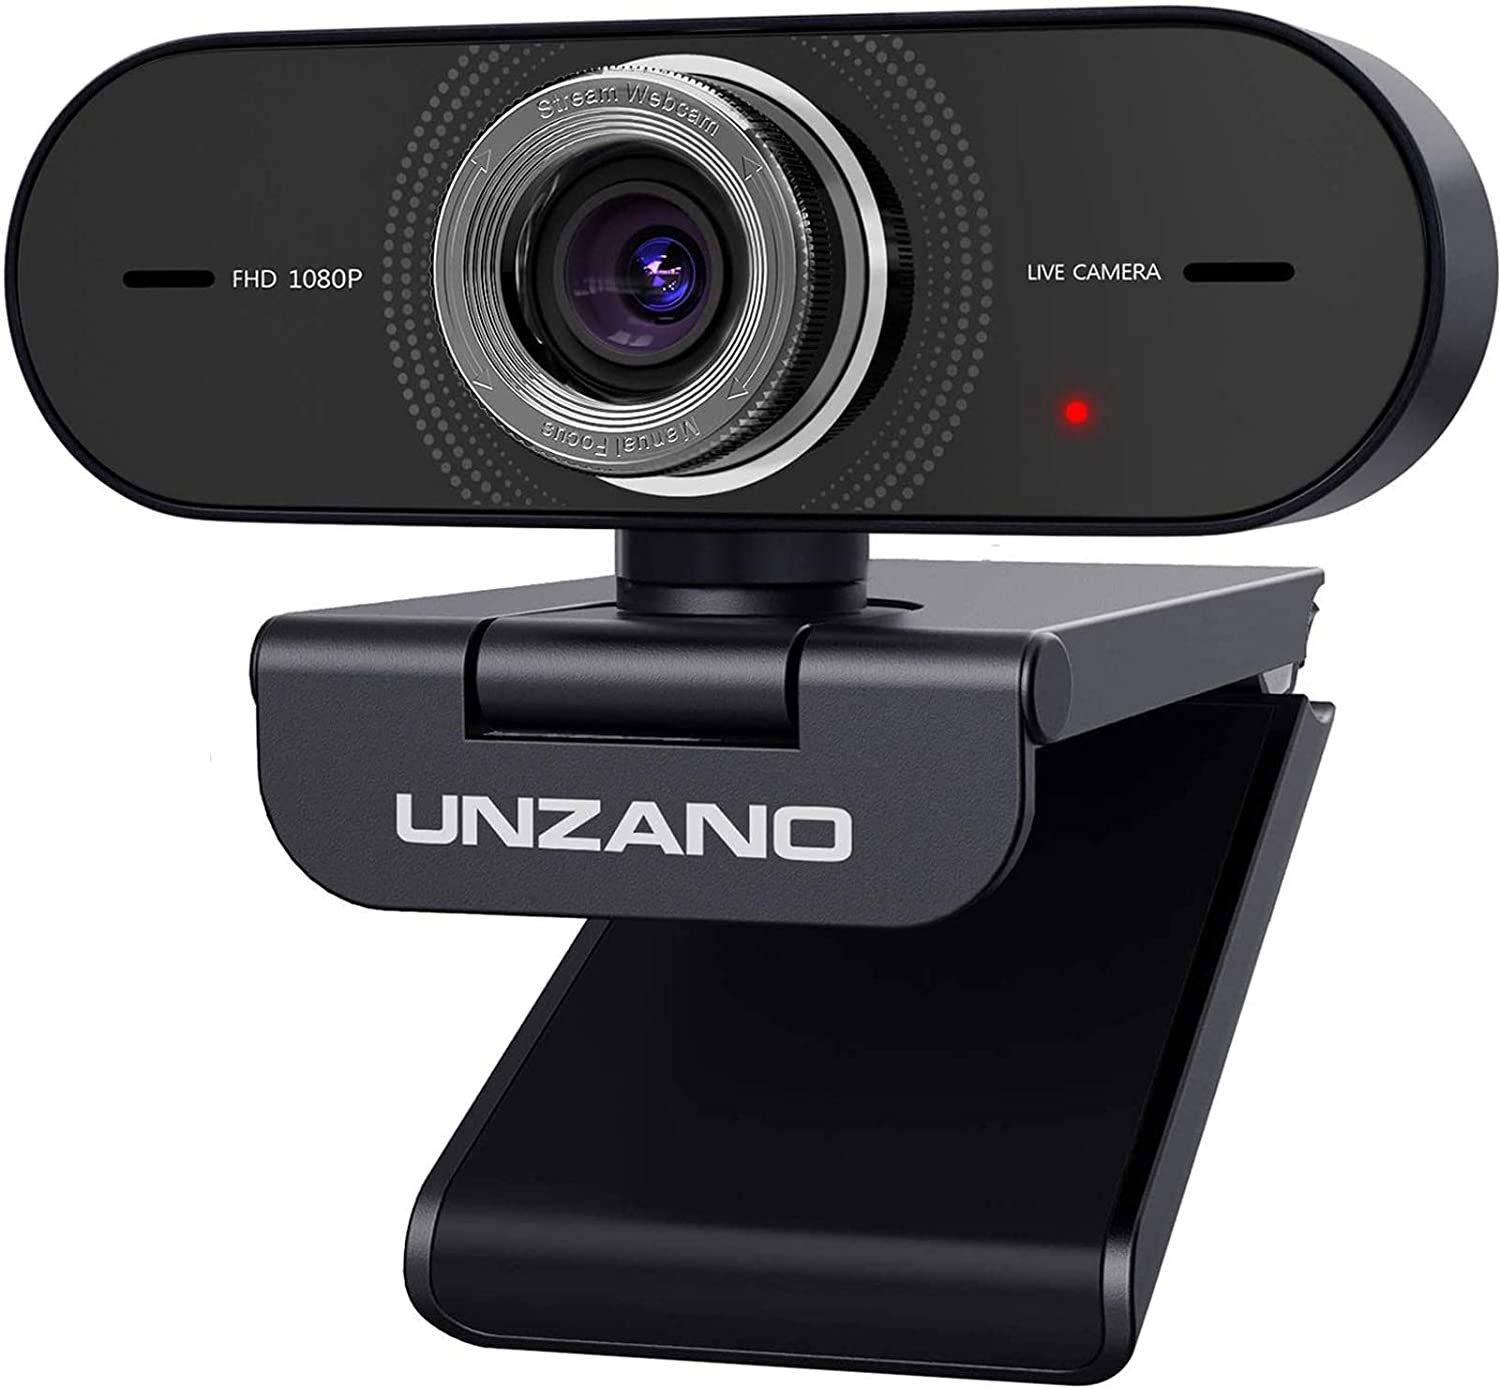 Webcam with Microphone, Full HD 1080P Web Camera for Mac/Windows Laptop/Desktop Computers, Plug&Play, Live Streaming Online Class Teaching, Video Conferencing/Calling/Recording, YouTube/Skype/Facebook